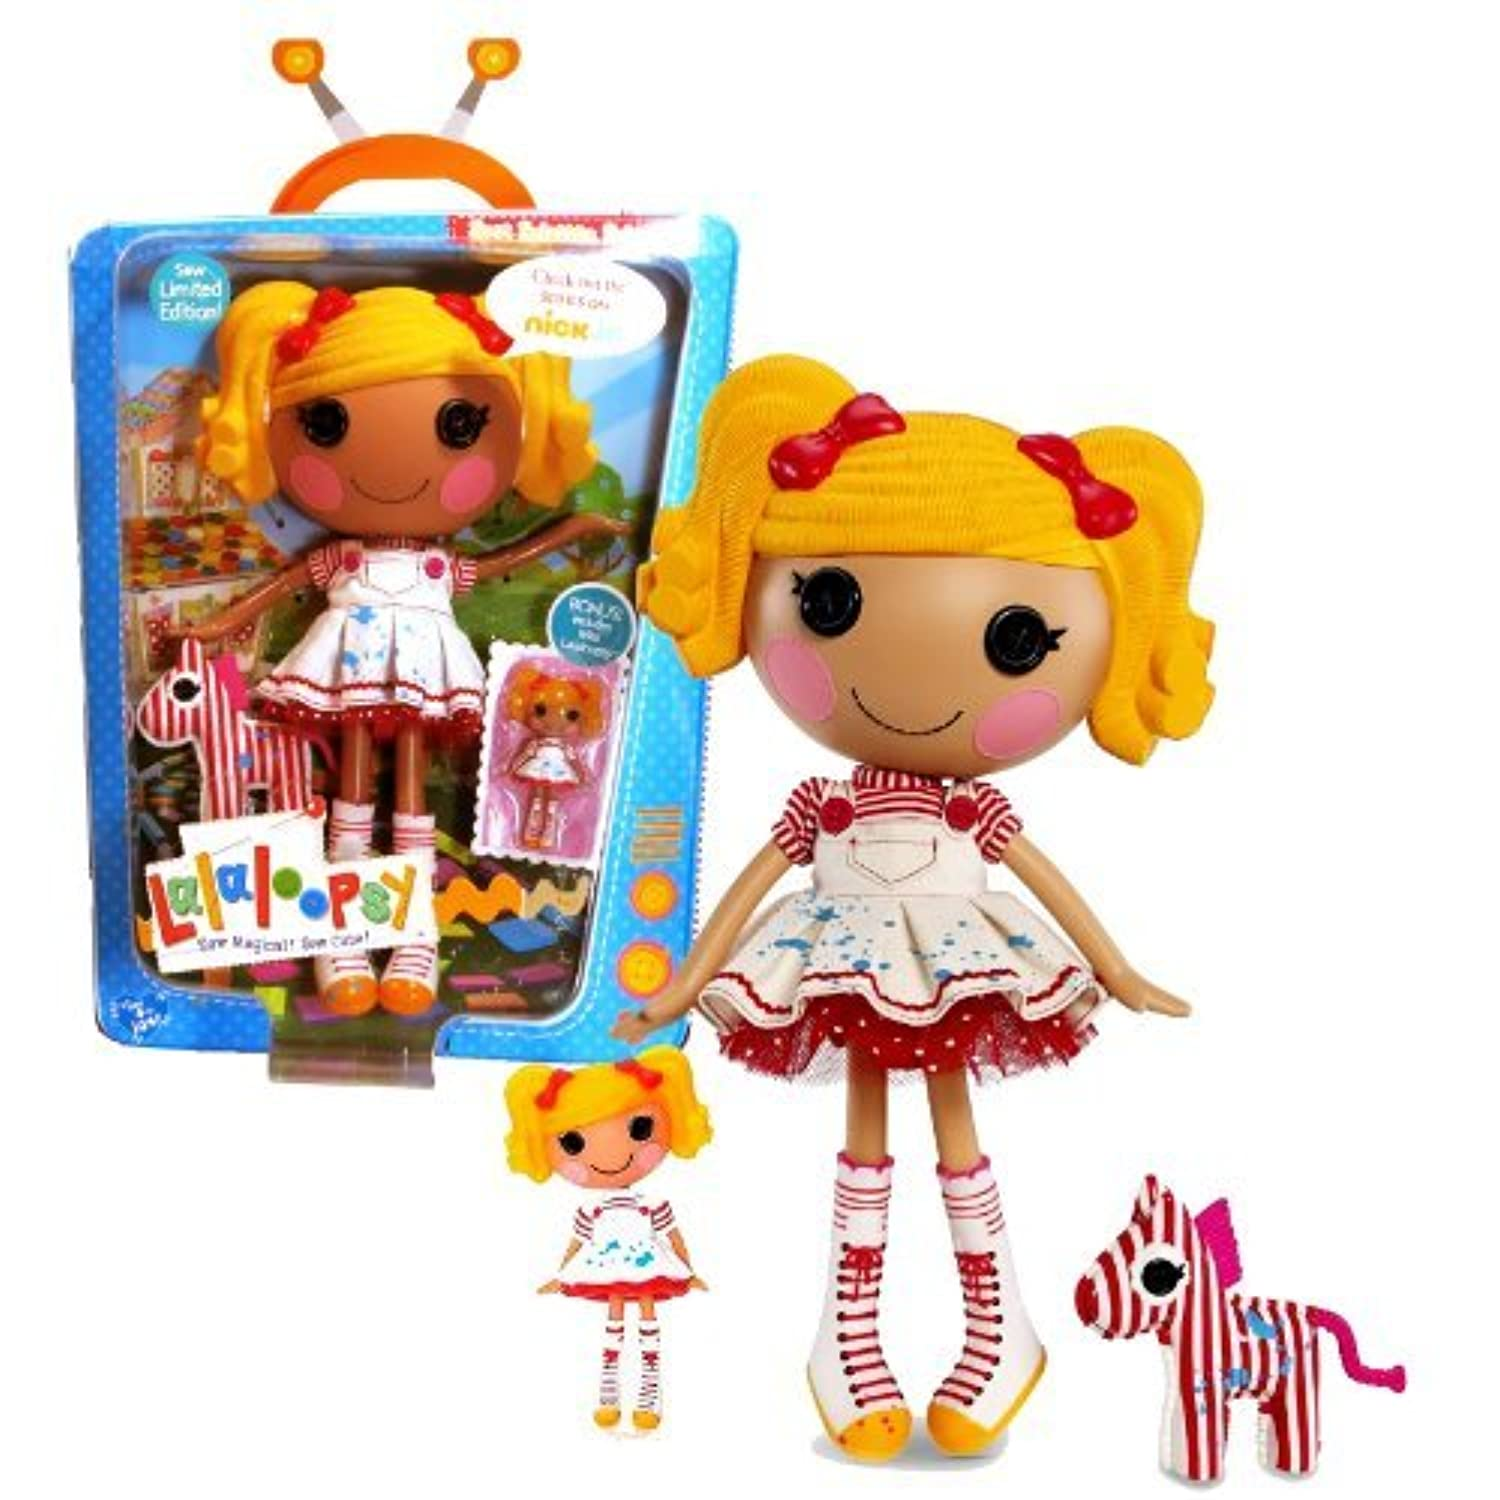 MGA Entertainment Lalaloopsy Sew Magical! Sew Cute! Limited Edition 12 Inch Tall Button Doll - Spot Splatter Splash with Pet Zebra and Bonus Mini 3 Inch Tall Lalaloopsy Doll by Lalaloopsy [並行輸入品]